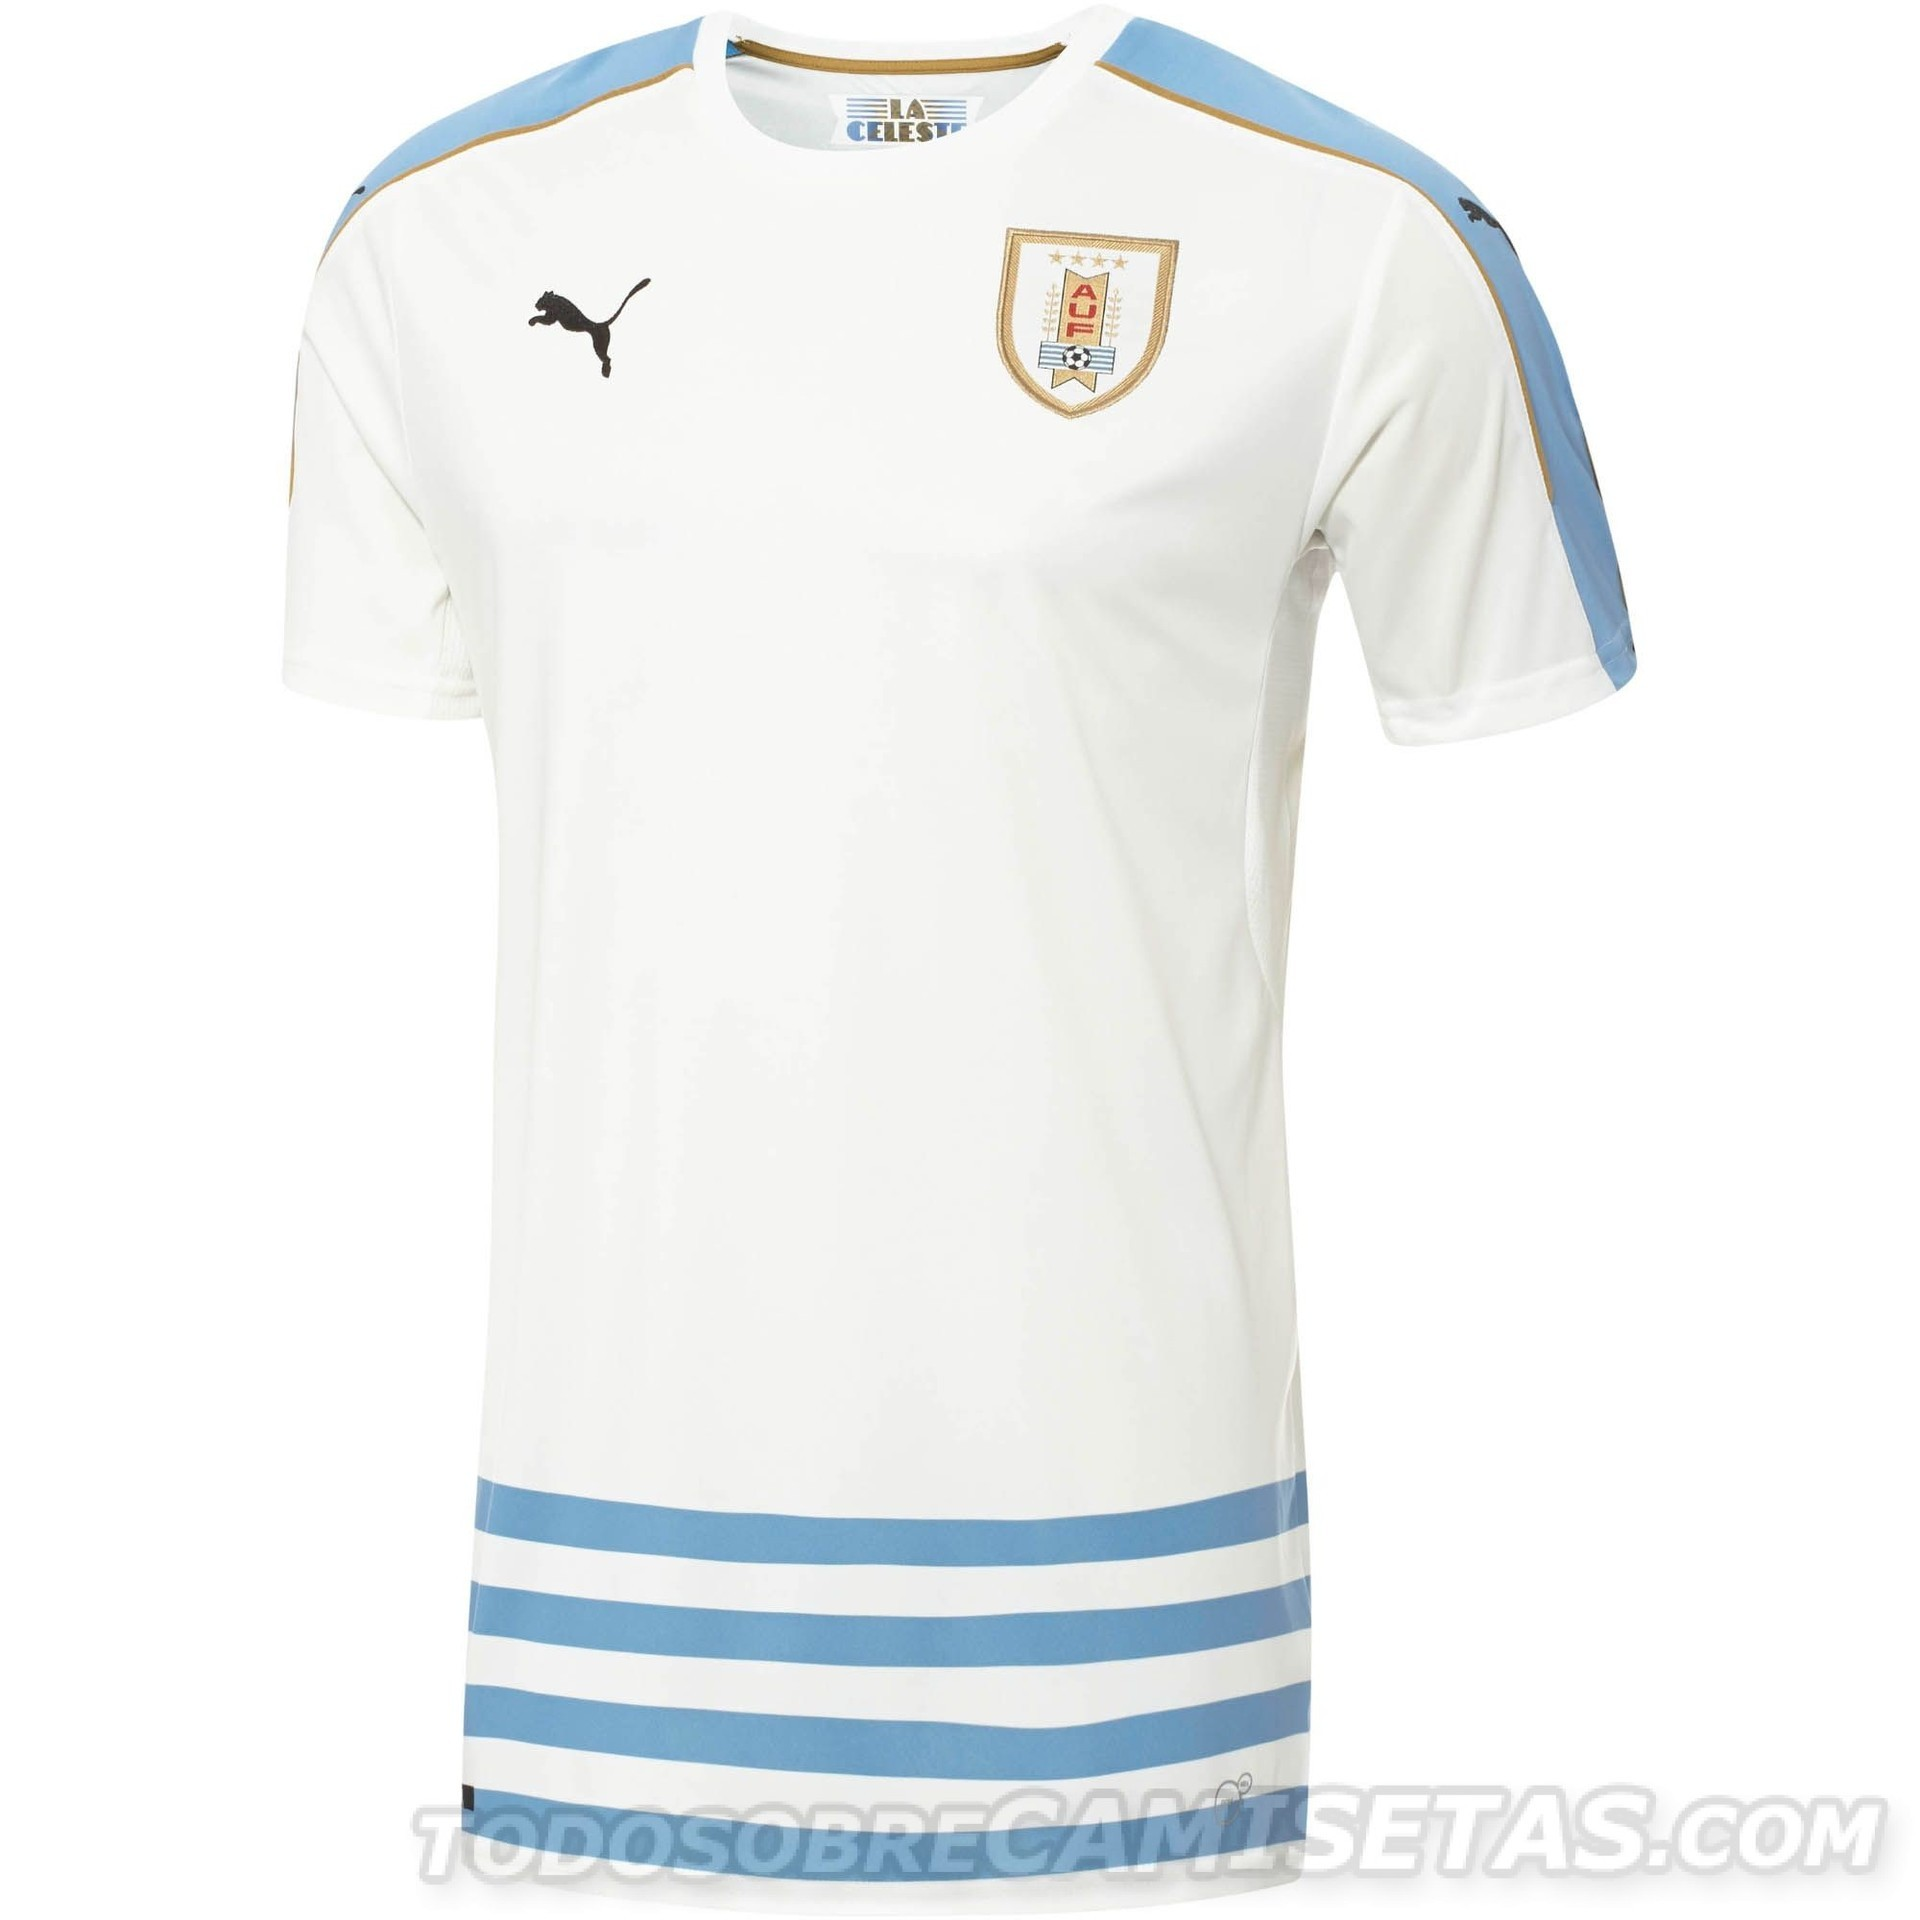 Uruguay-2016-PUMA-new-away-kit-2.jpg